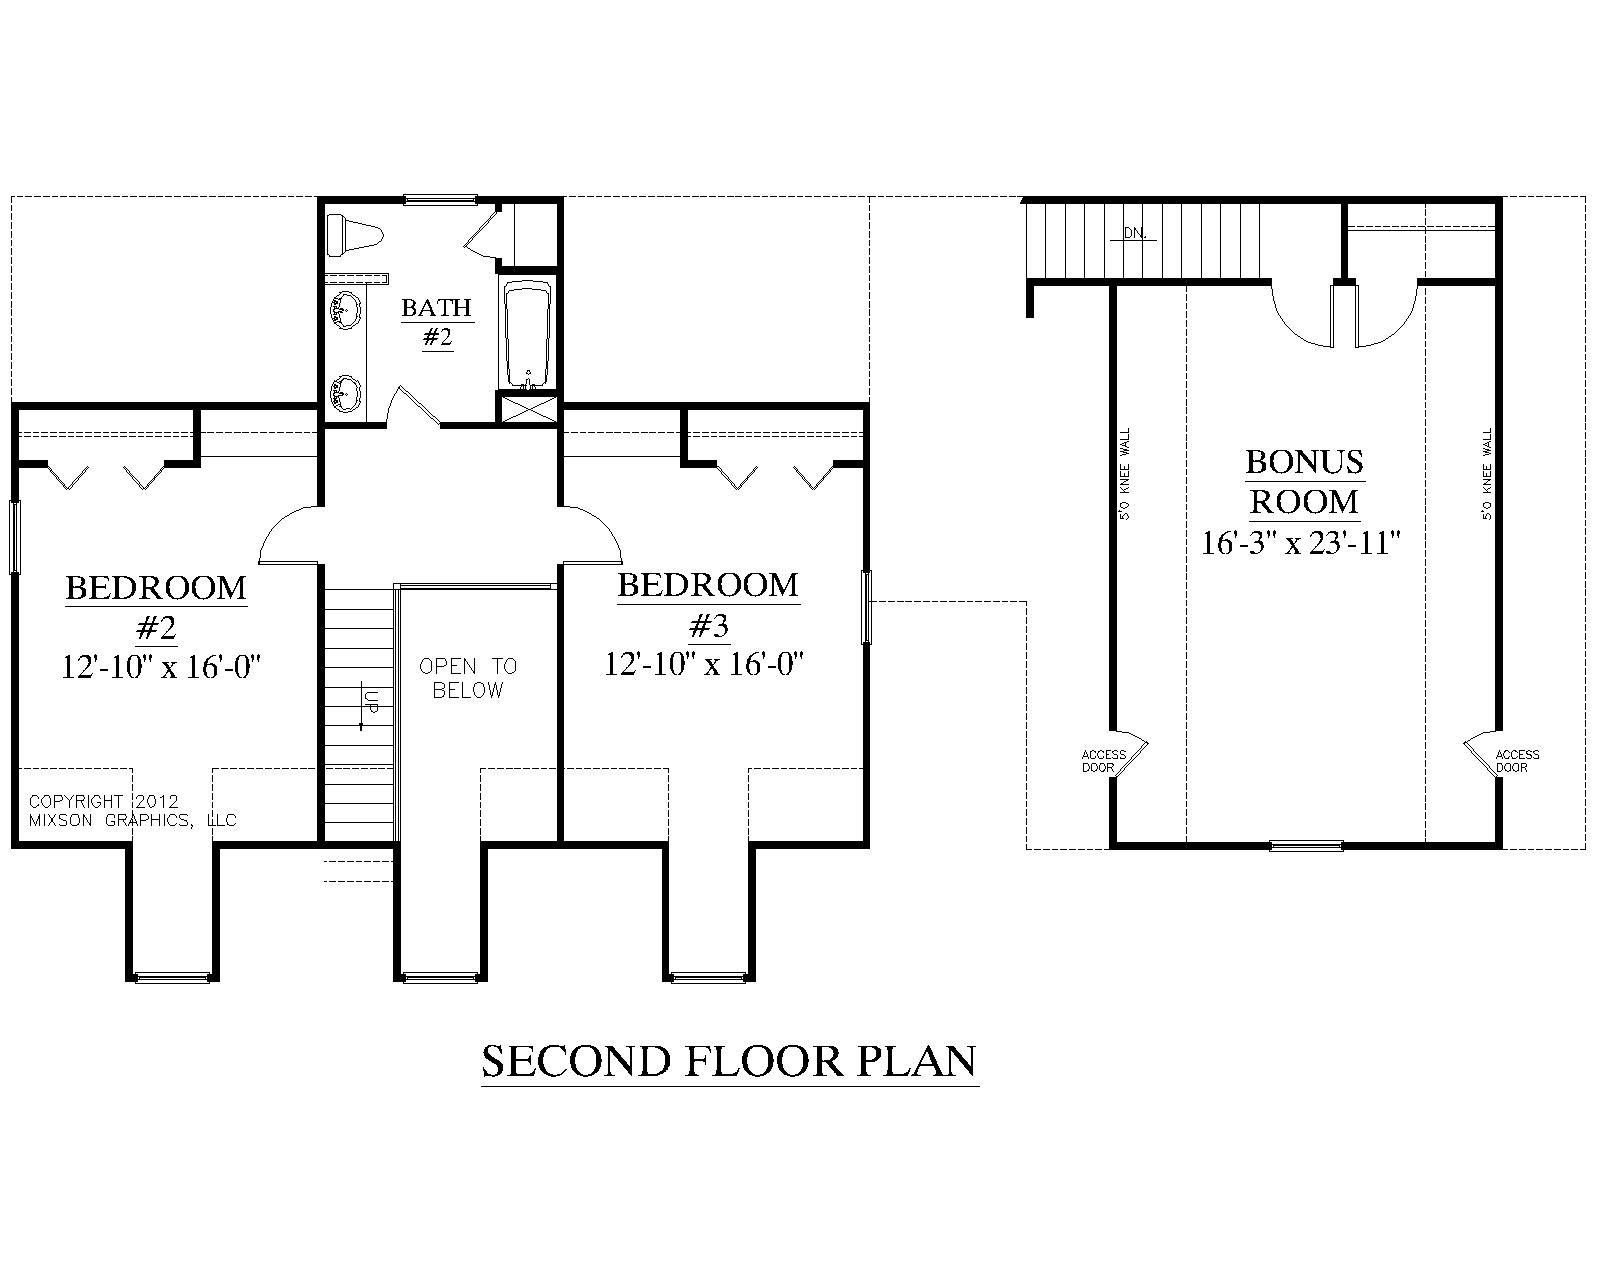 House plan 2091 b mayfield b second floor plan for 3 bedroom floor plans with bonus room